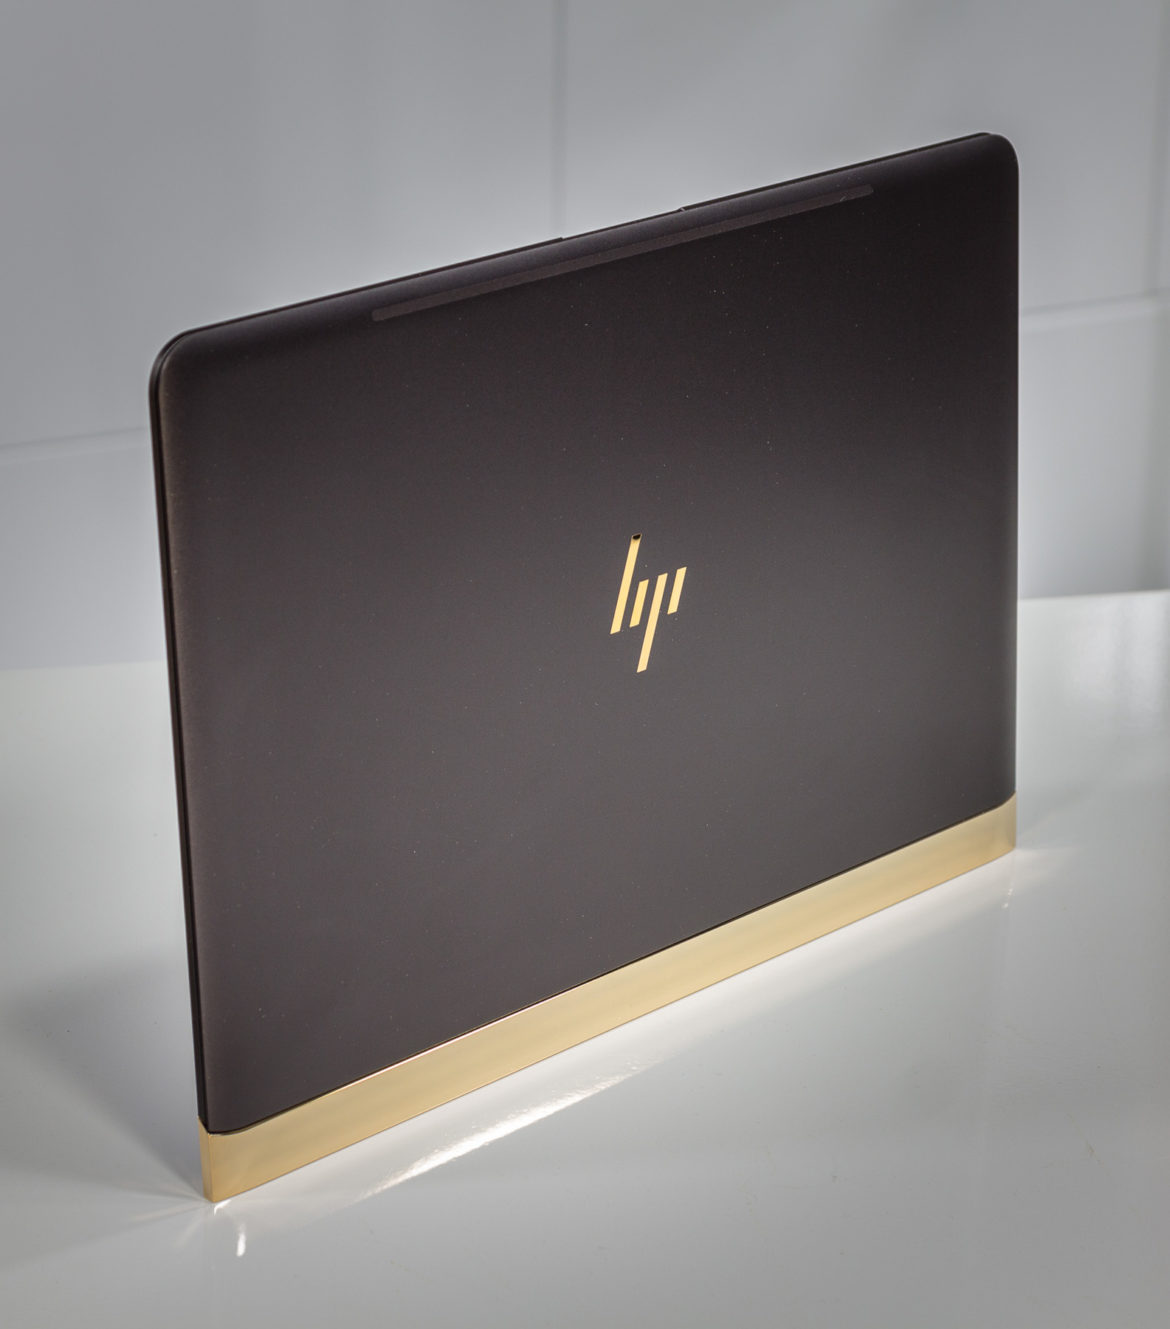 HP Spectre 13 Gold Bar, HP Spectre 13 Gold Casing